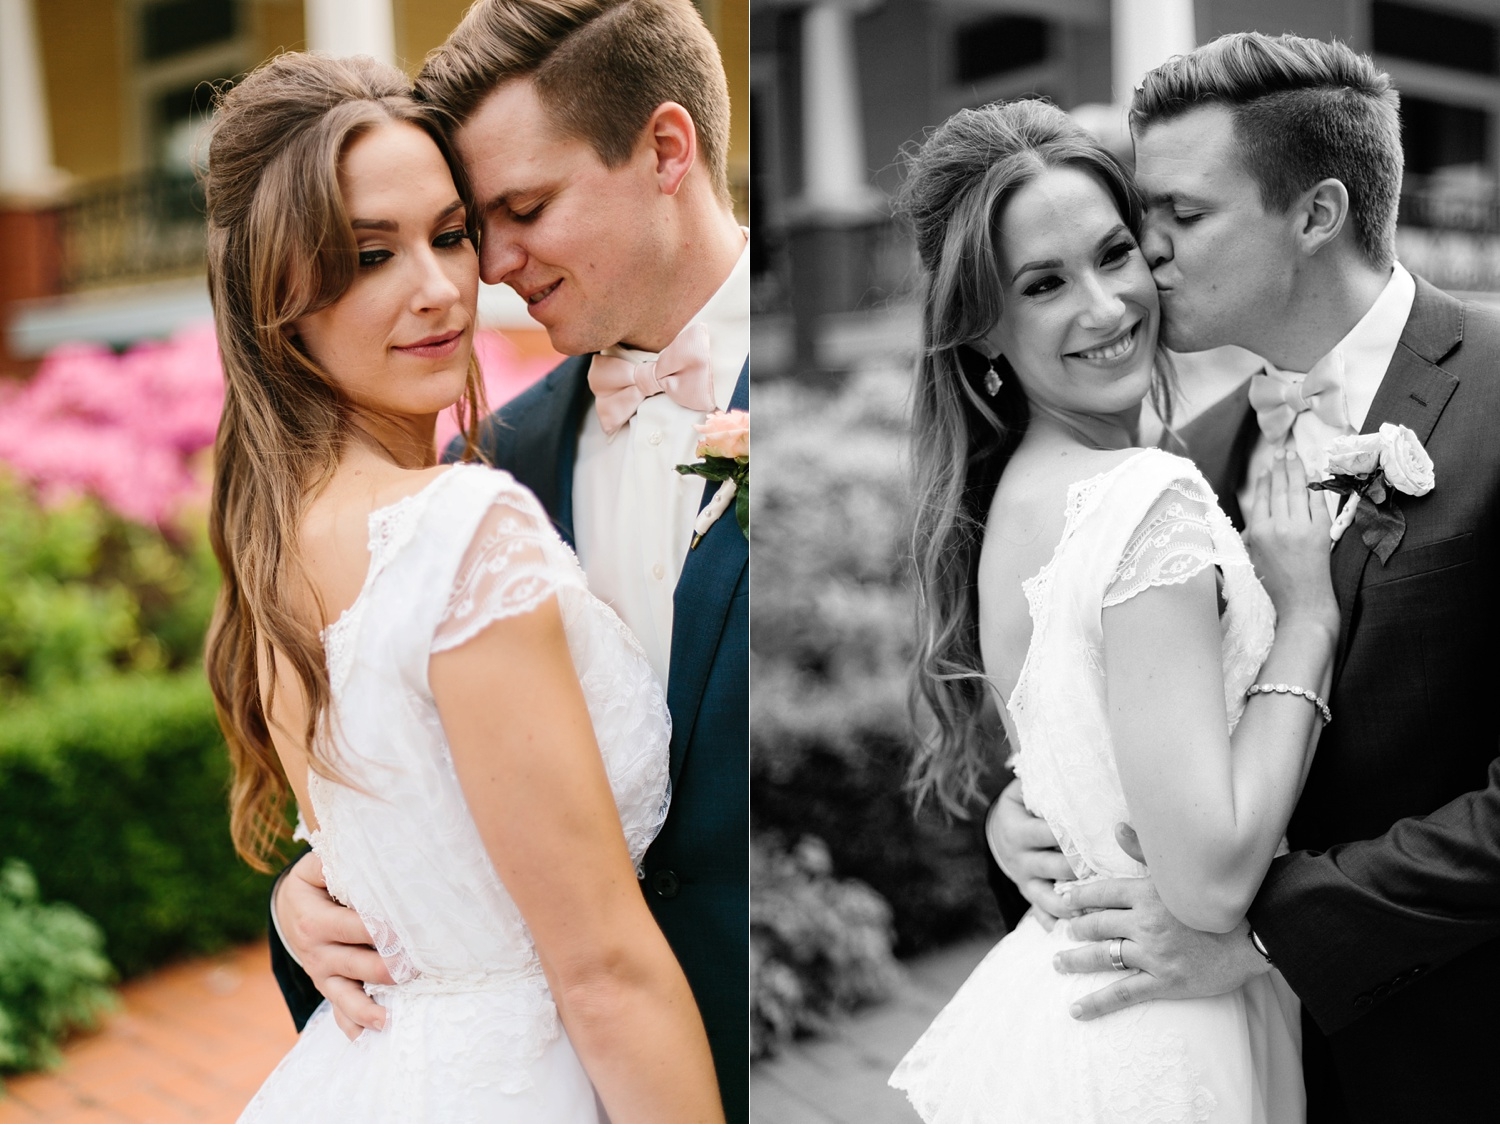 Amber + Daniel an intimate, simple, spring ceremony at Heard Craig Center and reception at Gather in McKinney, Texas by North Texas Wedding Photographer Rachel Meagan Photography 090